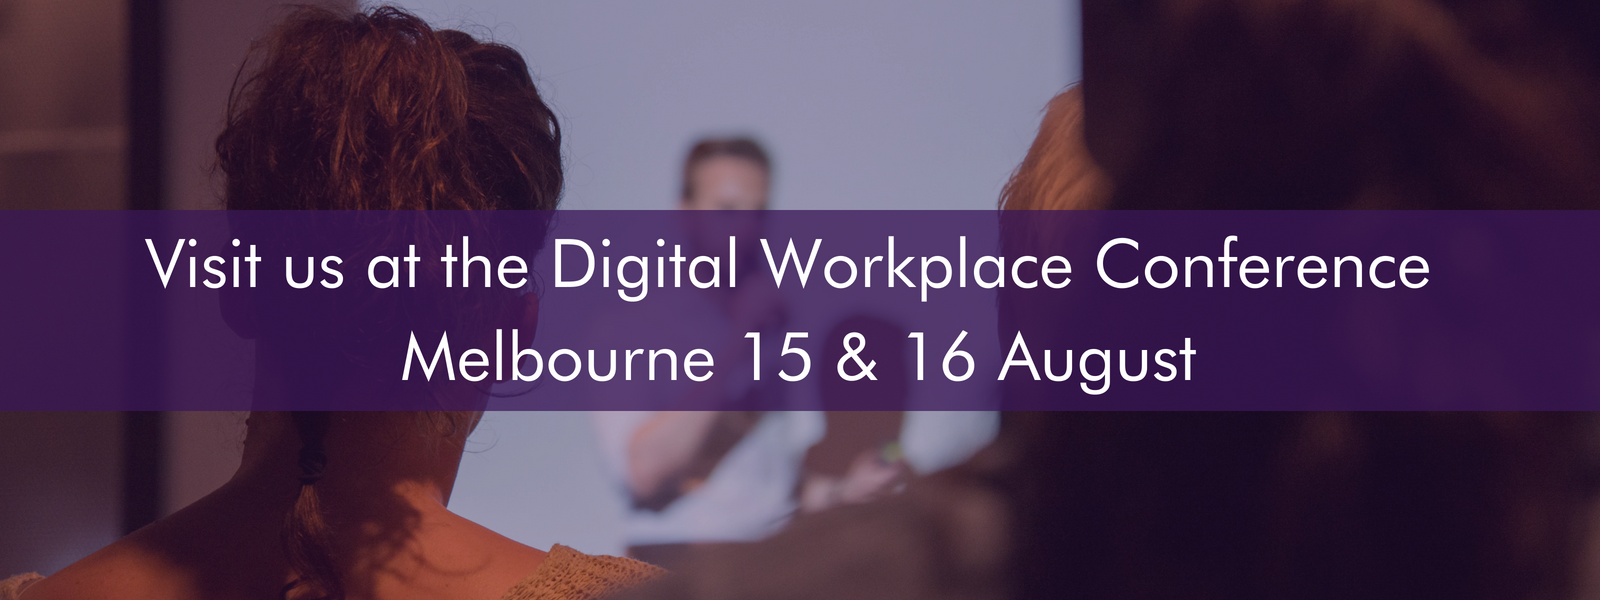 Top 5 Reasons to visit us at The Digital Workplace Conference Australia